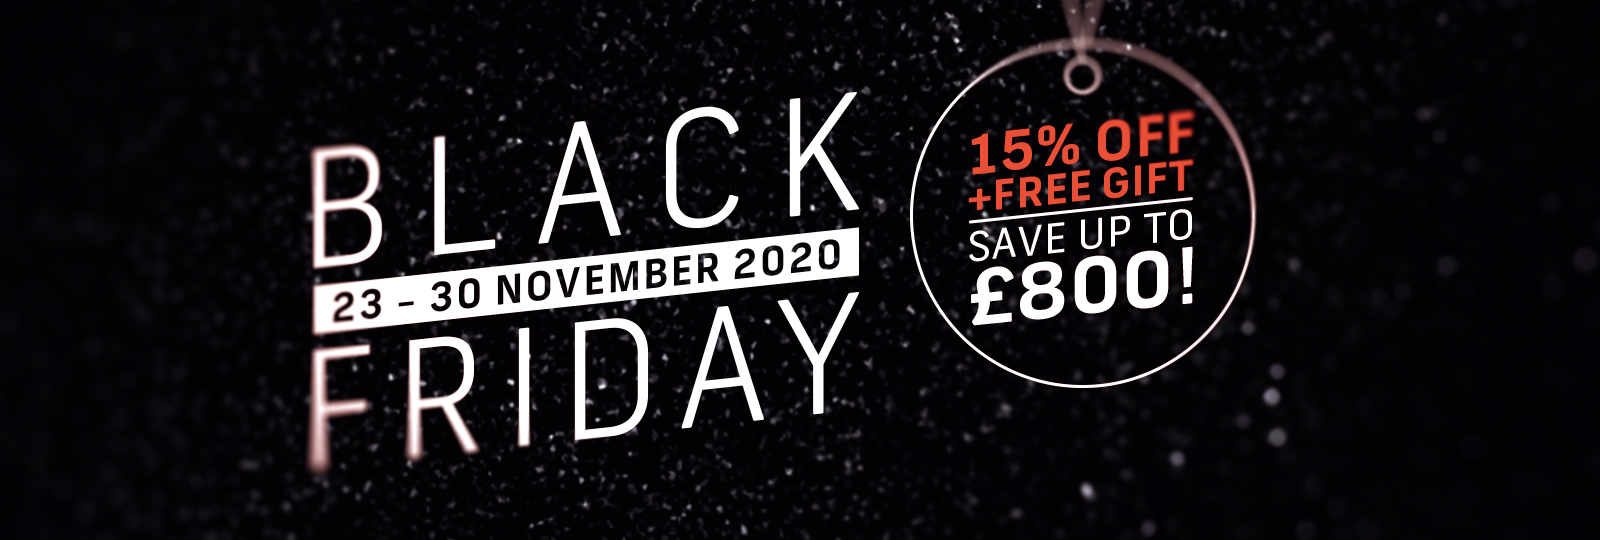 Black Friday 2020 at bloom hearing specialists